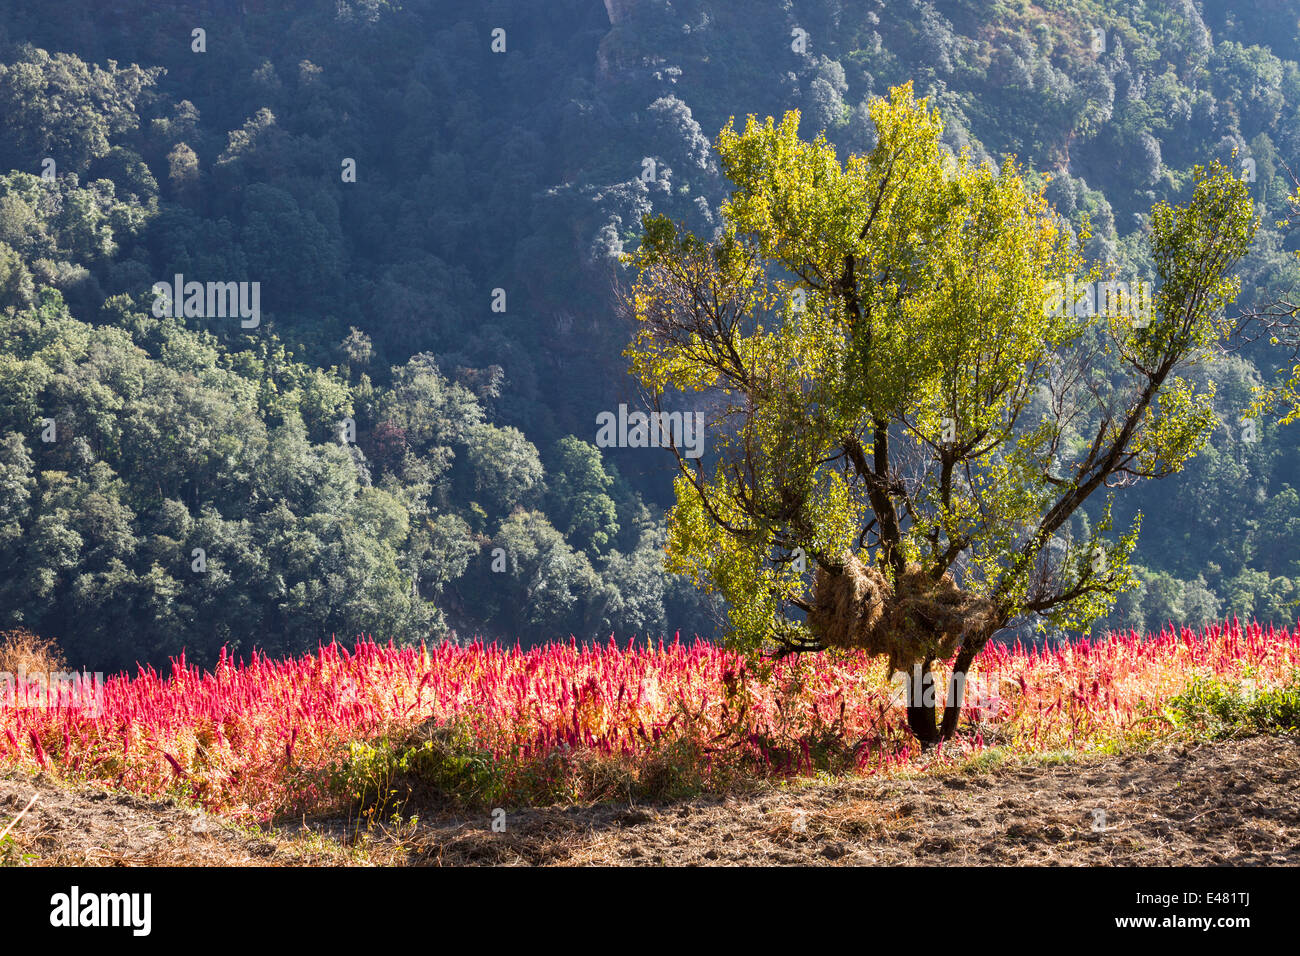 A field of amaranth on a Himalayan mountain, Uttarakhand, India. Stock Photo